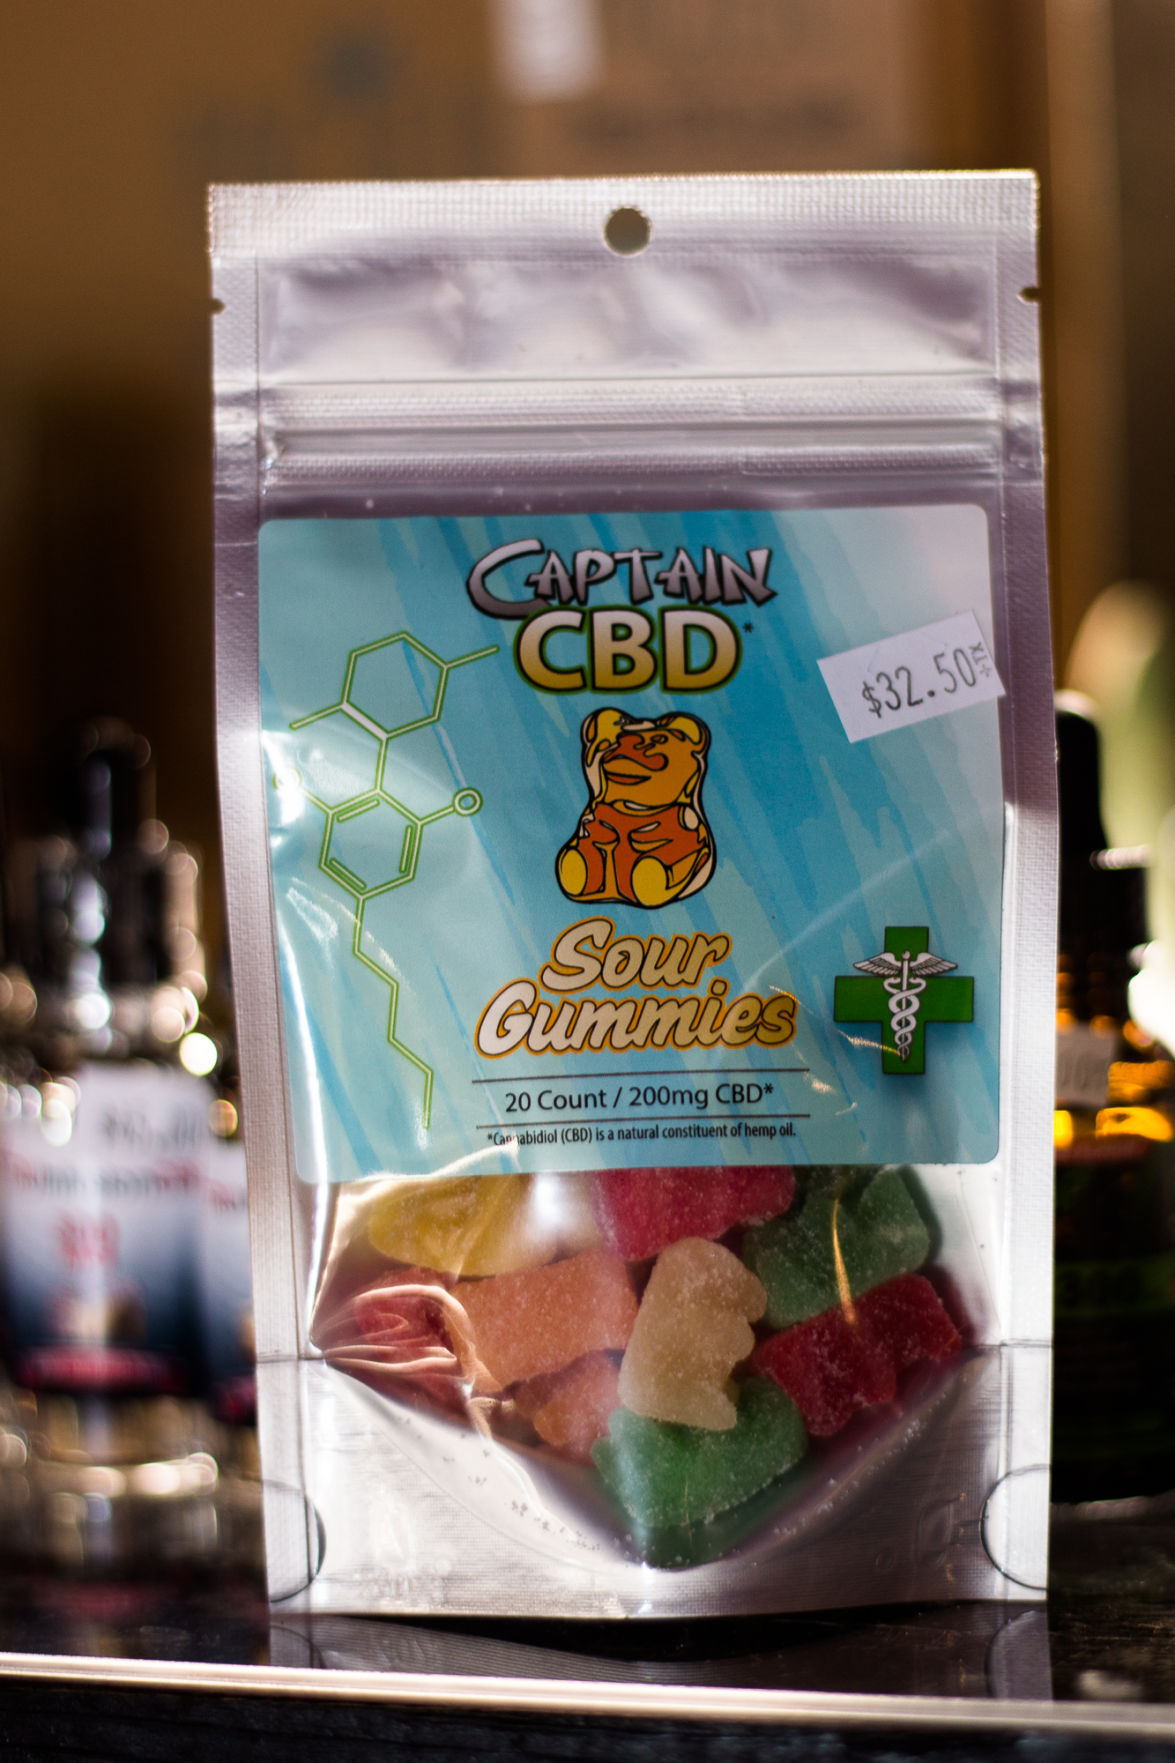 CBD offers healing without the high